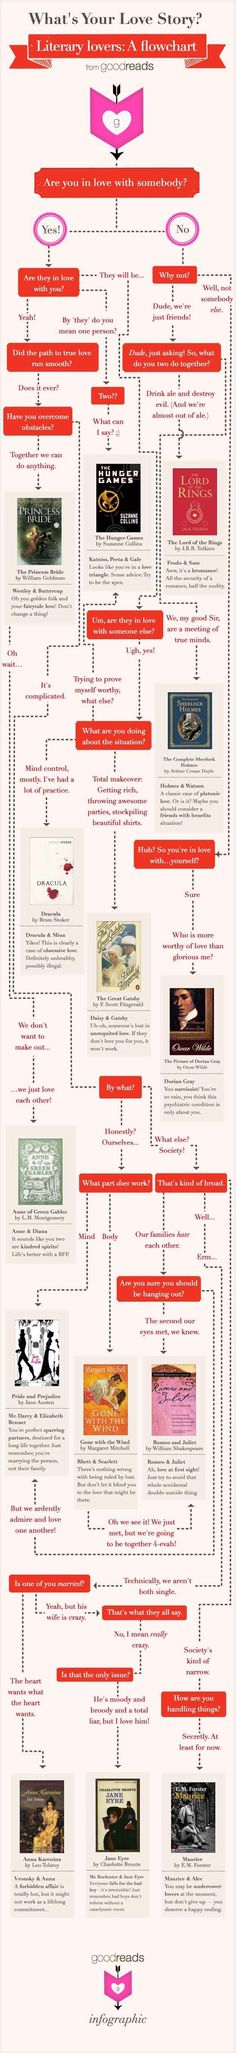 A flowchart to find your (literary) love story.